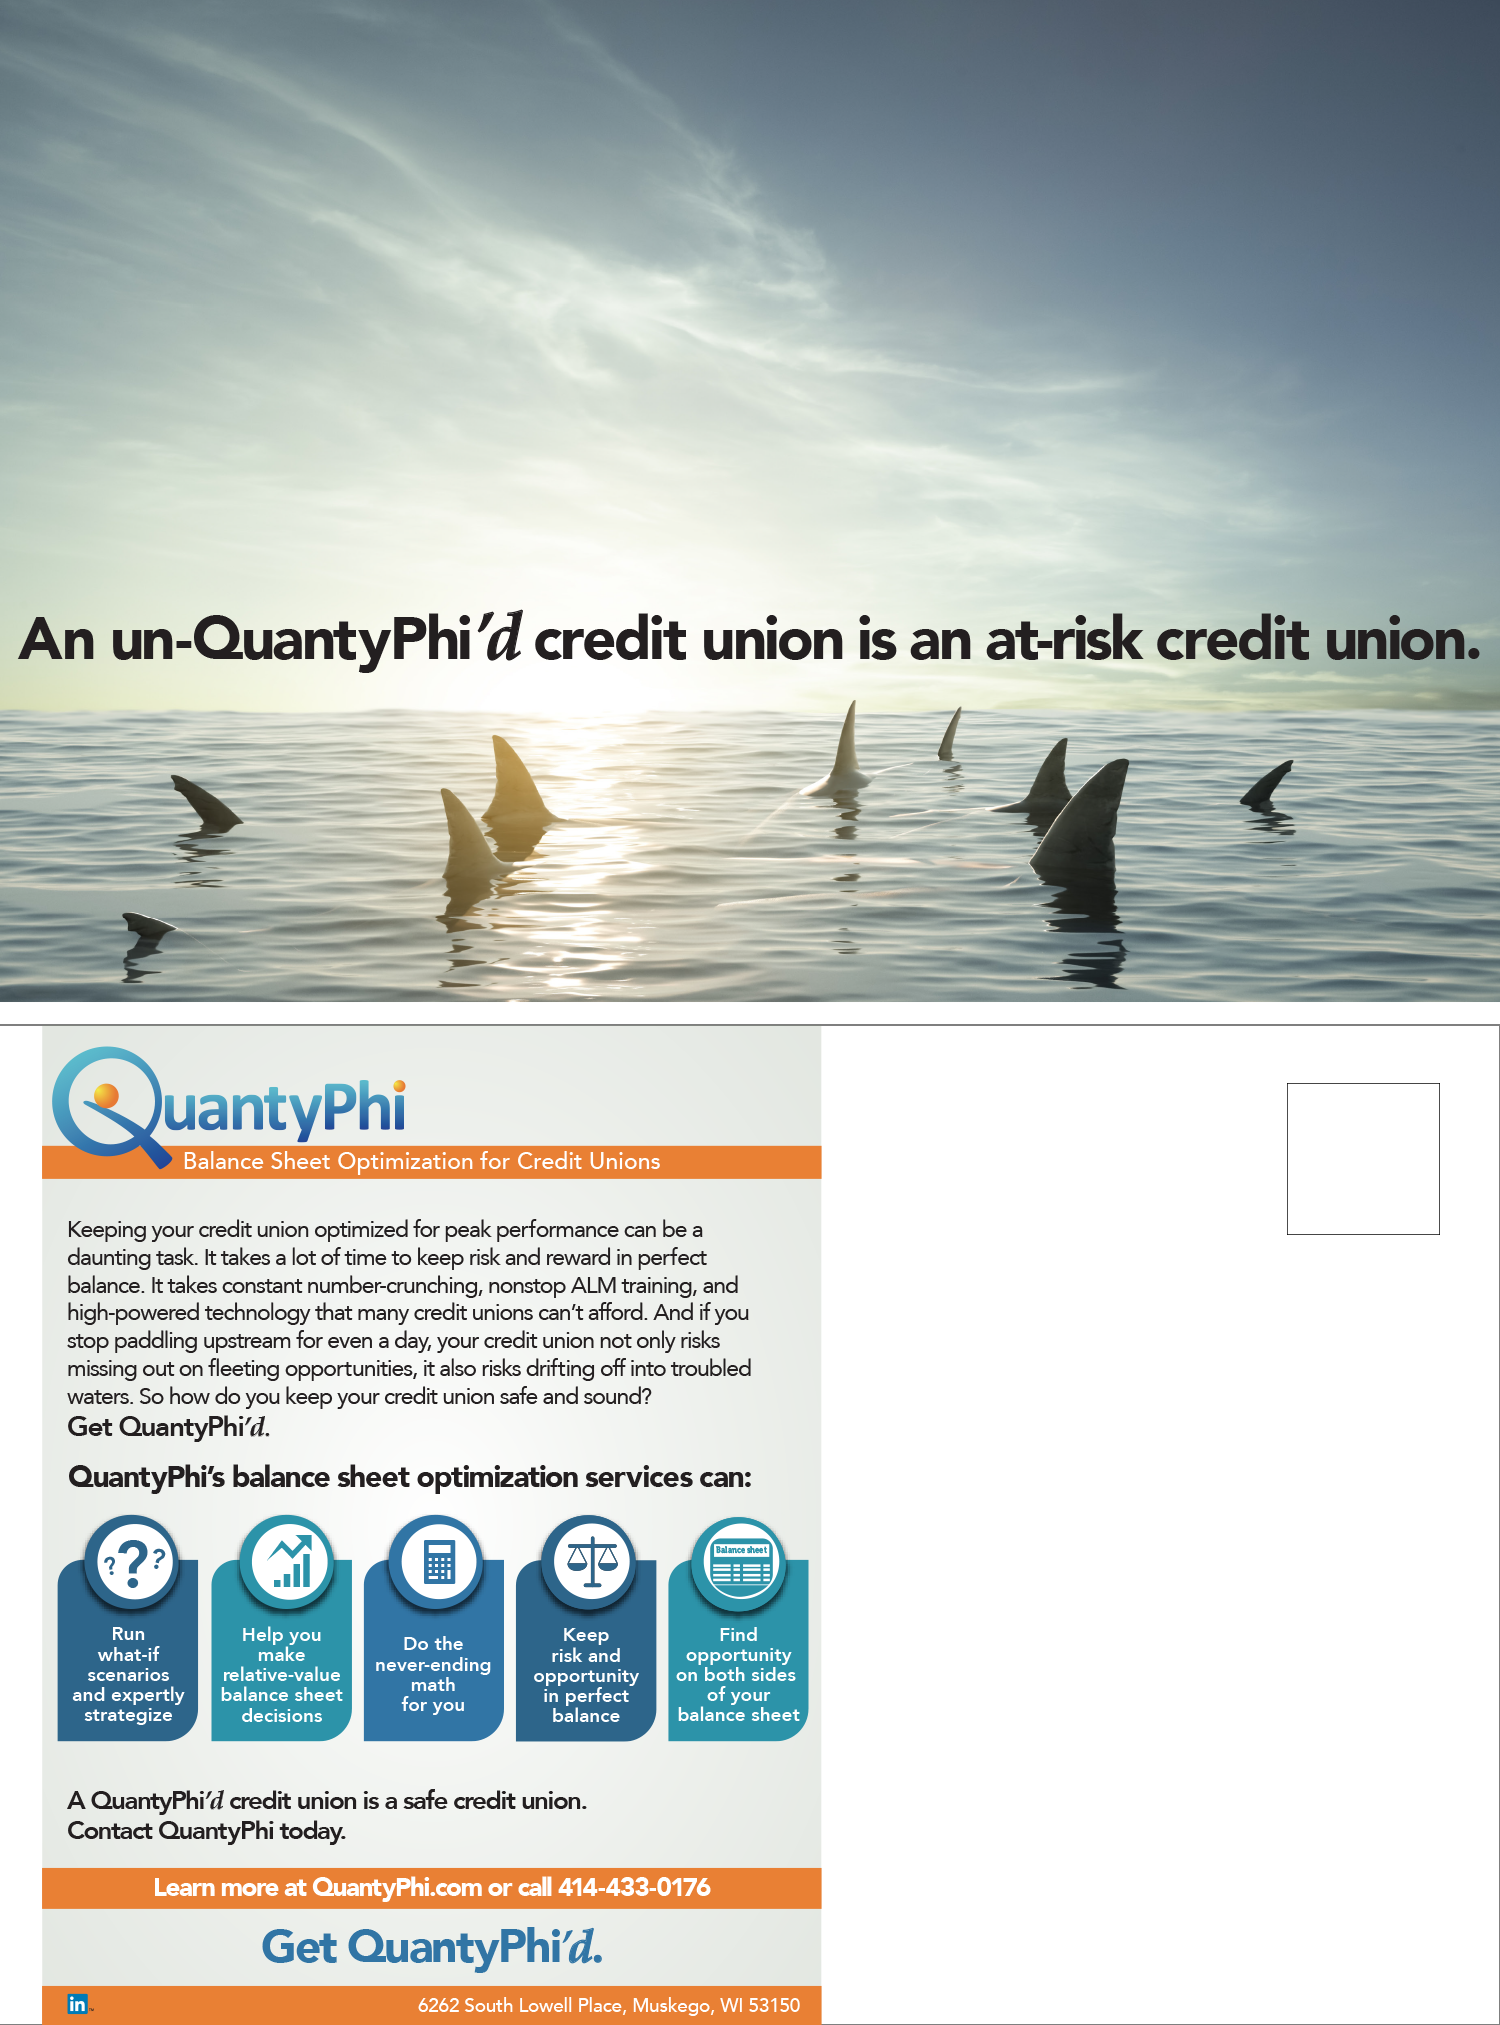 QuantyPhi_Postcards_At-Risk_Sharks_072417.png